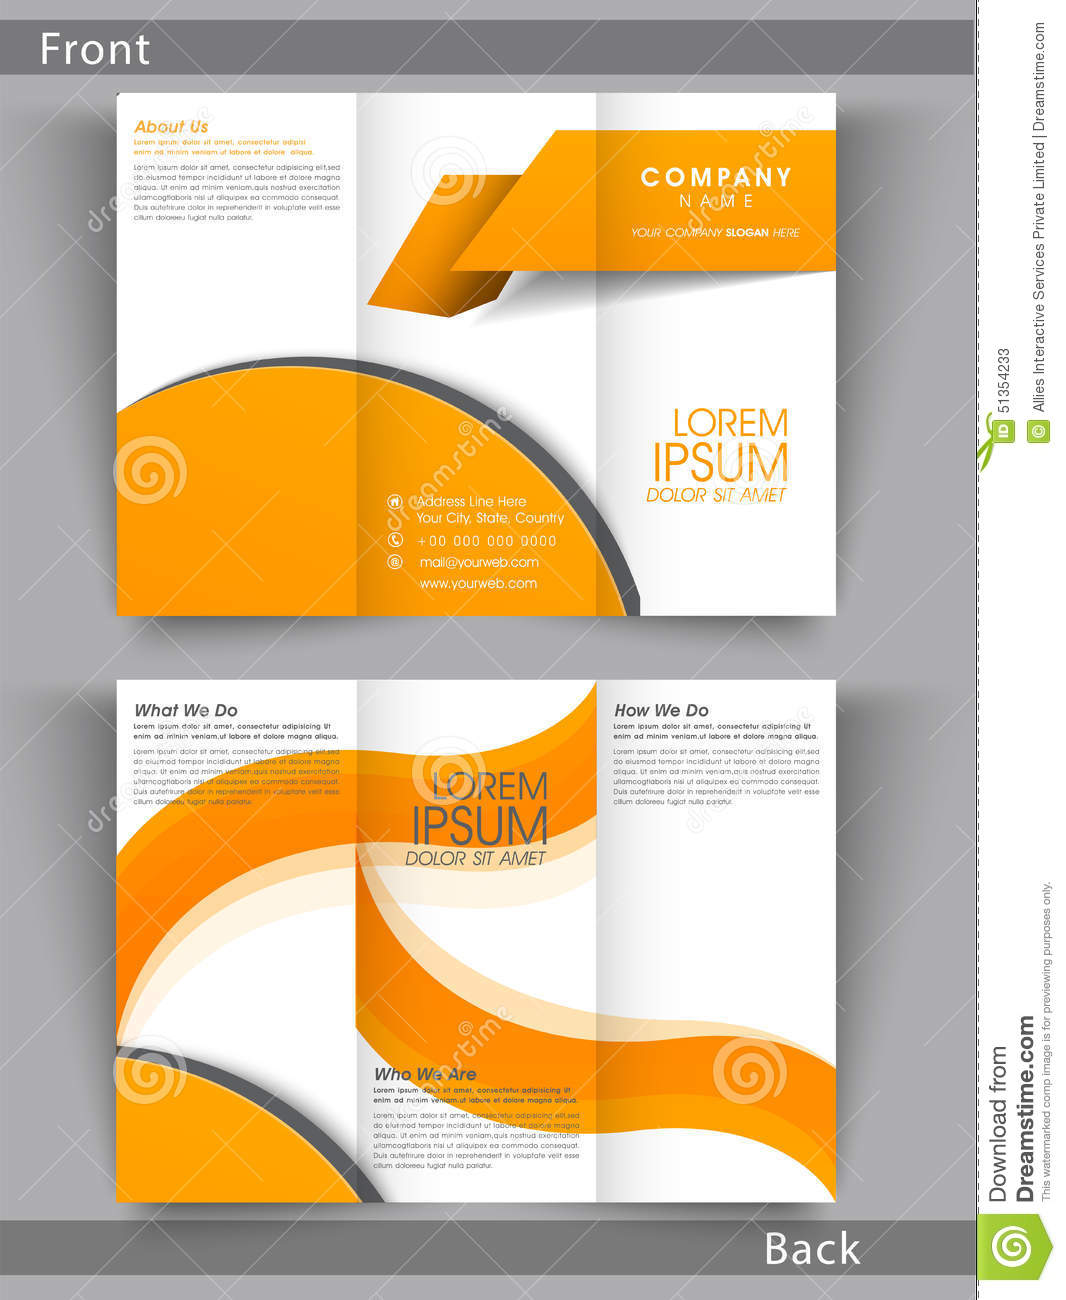 advertisement brochure templates free - professional business trifold brochure or template design